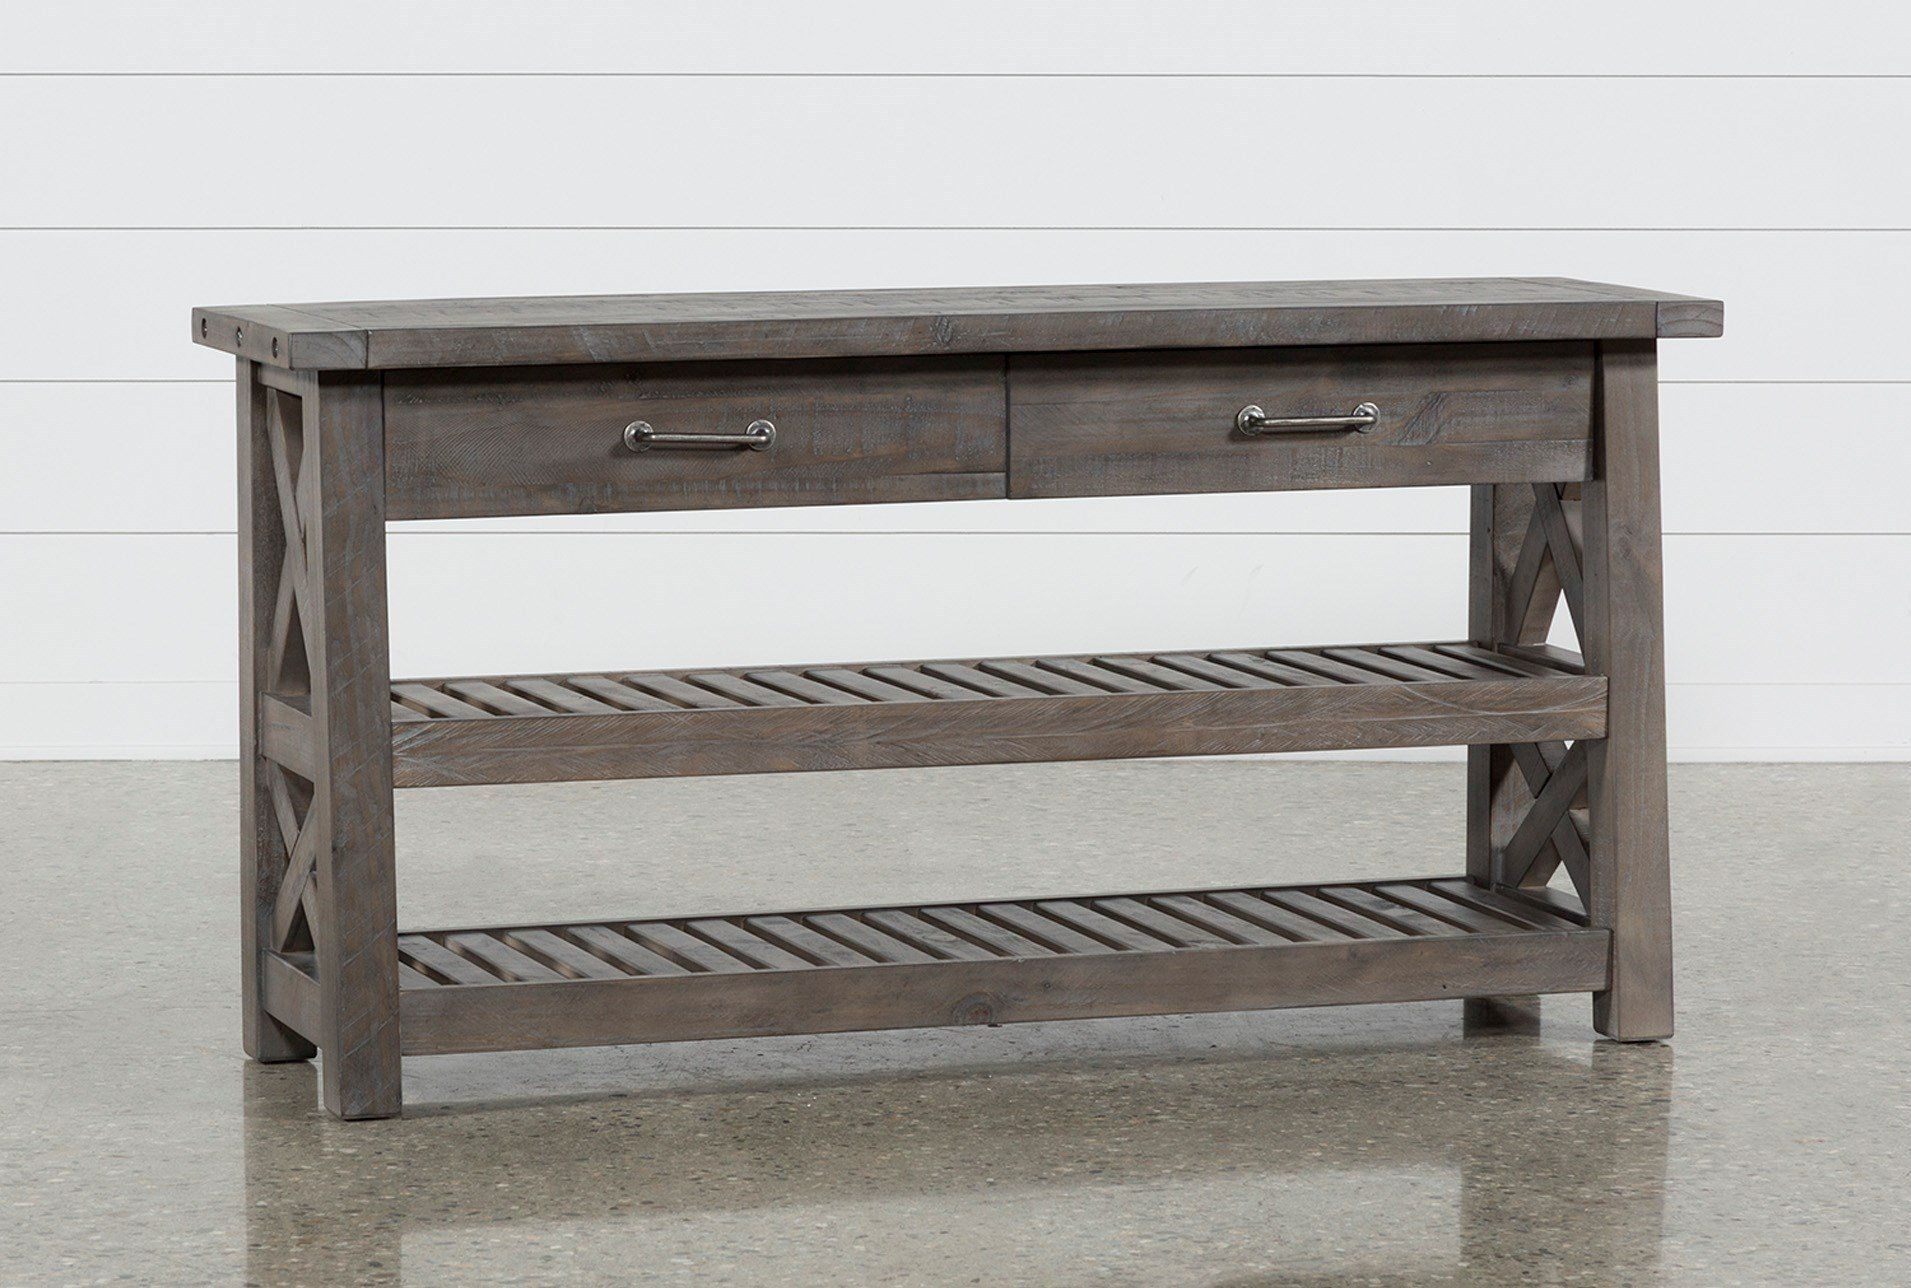 Jaxon Grey Sofa Table | House Shiz | Pinterest | Sofa Tables, Rustic with regard to Jaxon Grey Sideboards (Image 14 of 30)